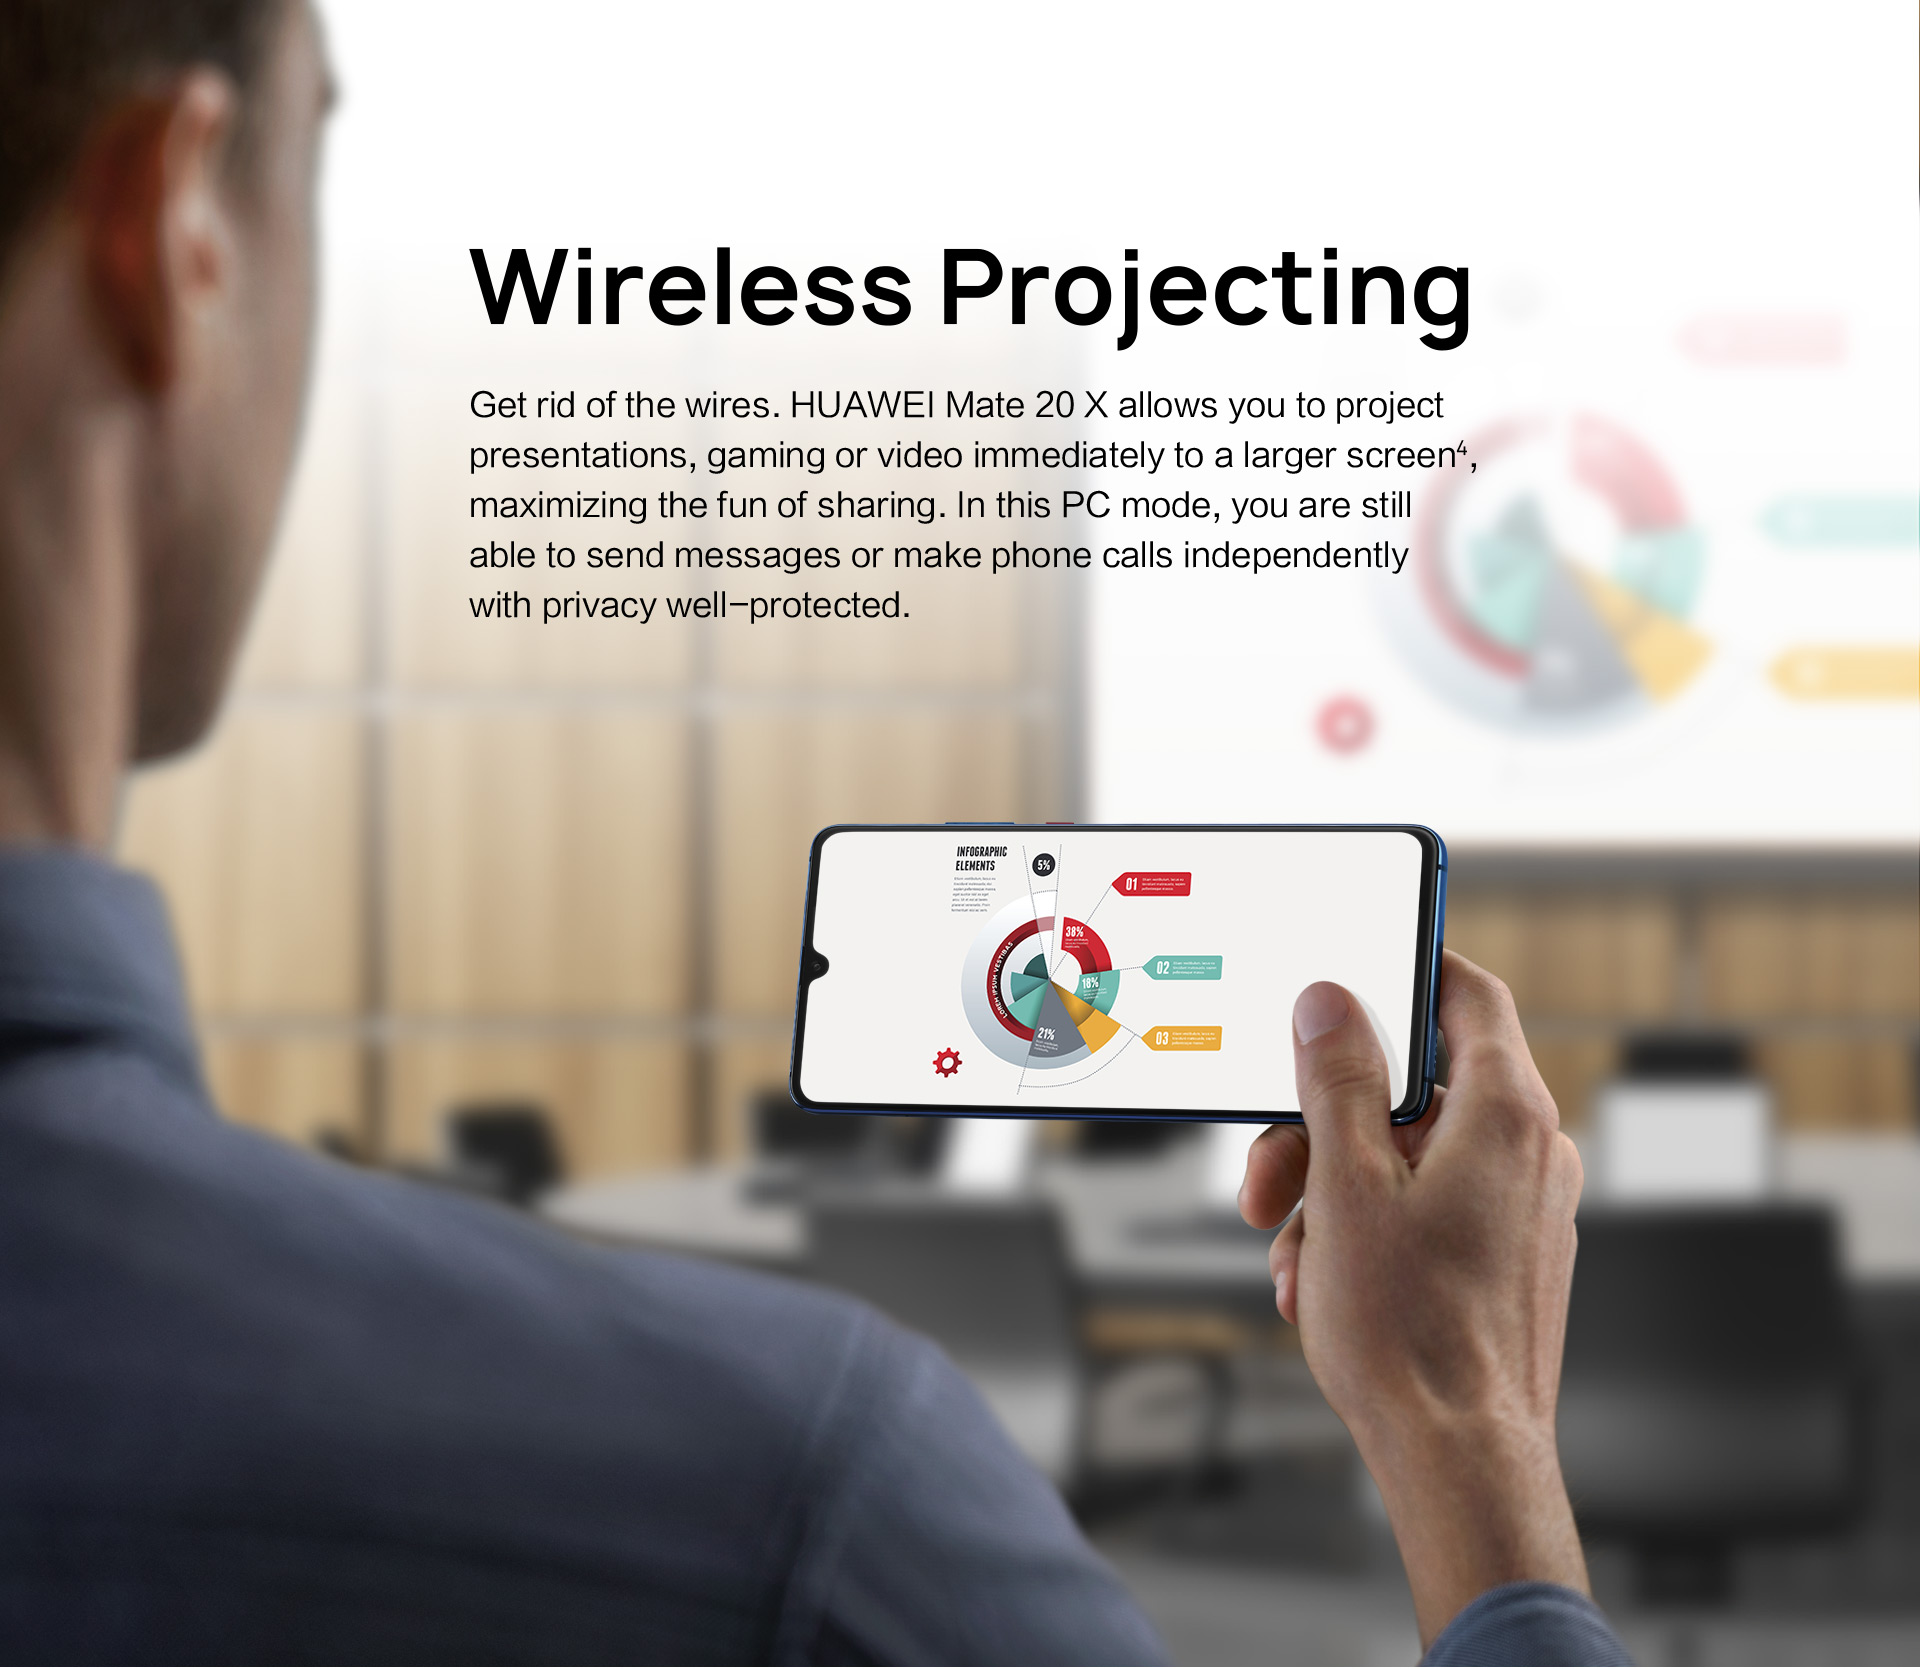 Huawei Mate 20 X Wireless Projection